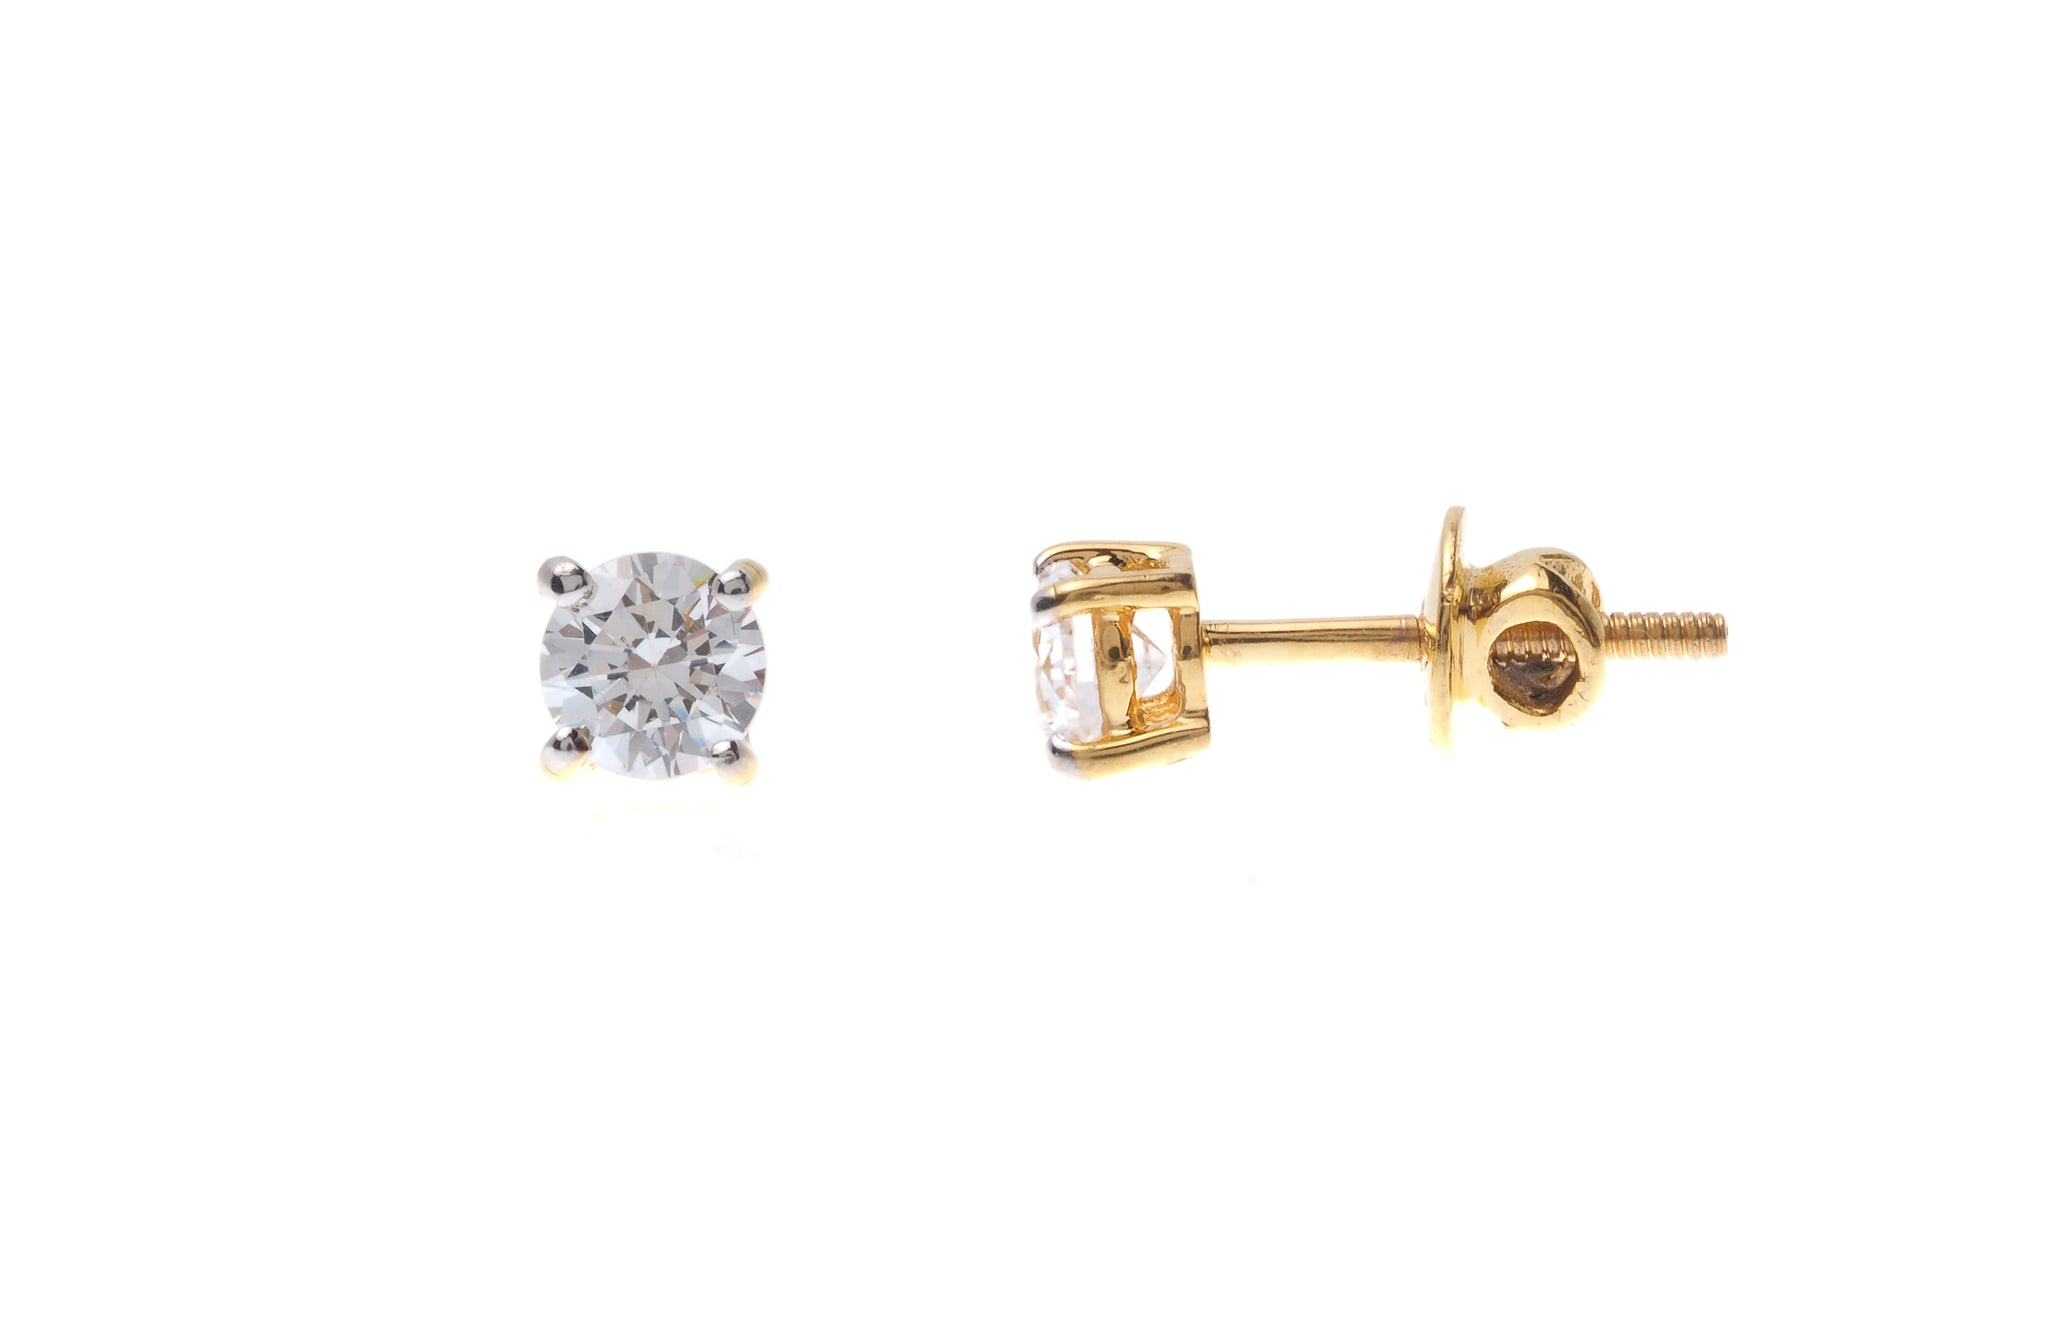 lewis cubic john nina online buynina rsp main stud pdp b at johnlewis gold earrings white zirconia com